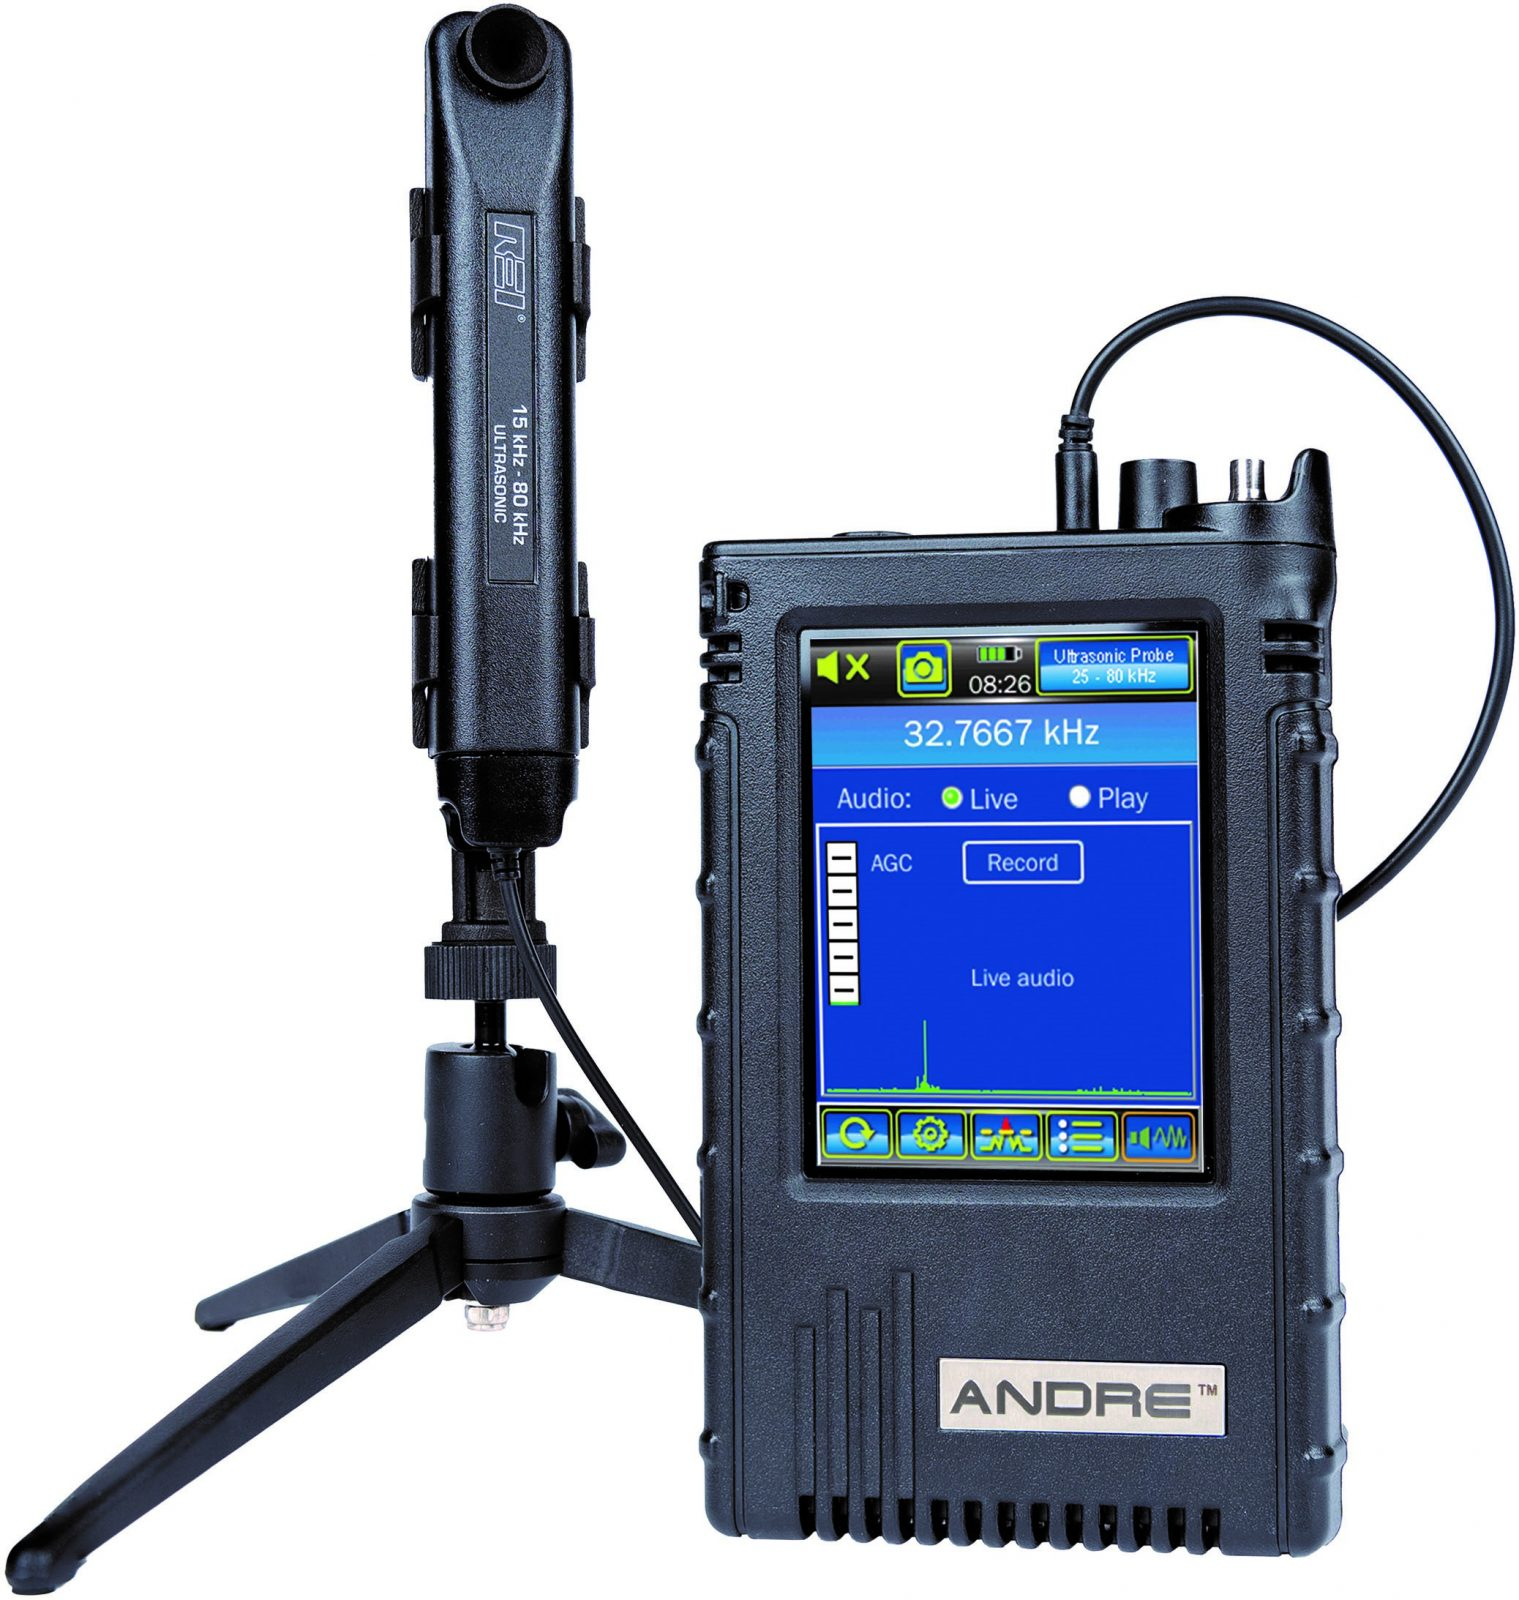 New ANDRE Deluxe Offers Higher Frequency Detection Range